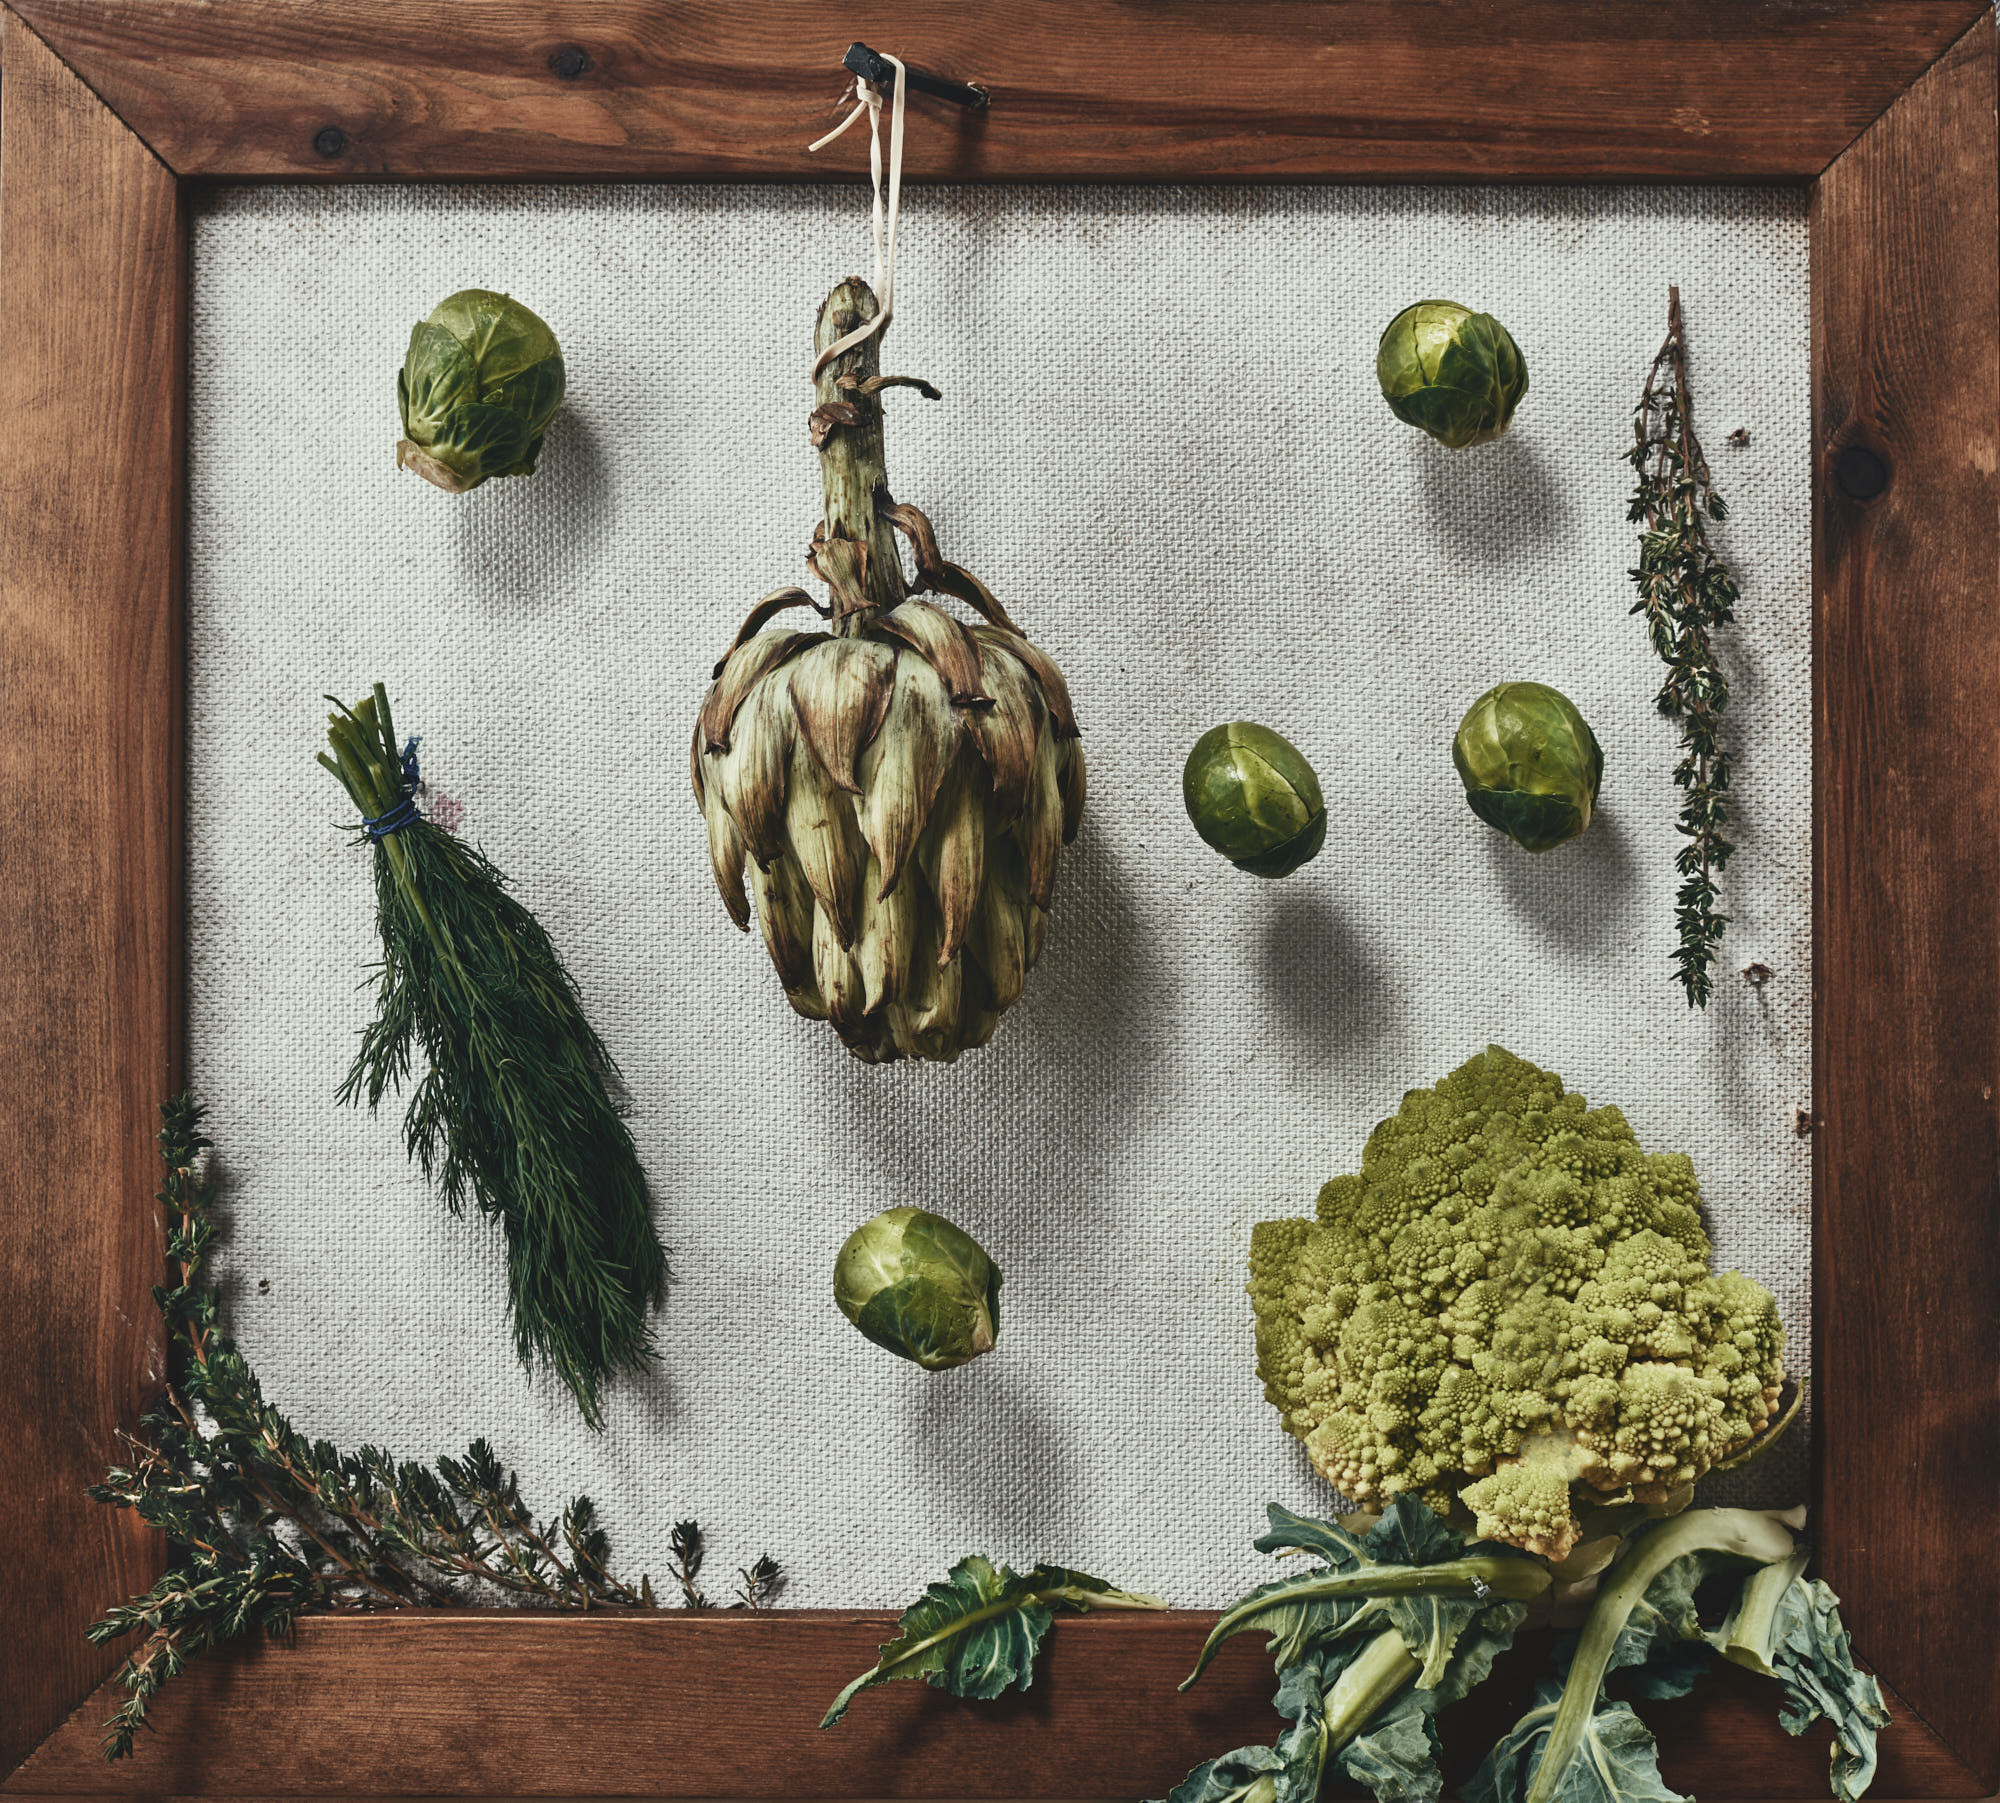 Photographic Trompe l'œil still life food photograph of vegetables in a frame, in the style of an old botanical illustration by harrogate, leeds yorkshire commercial advertising photographer